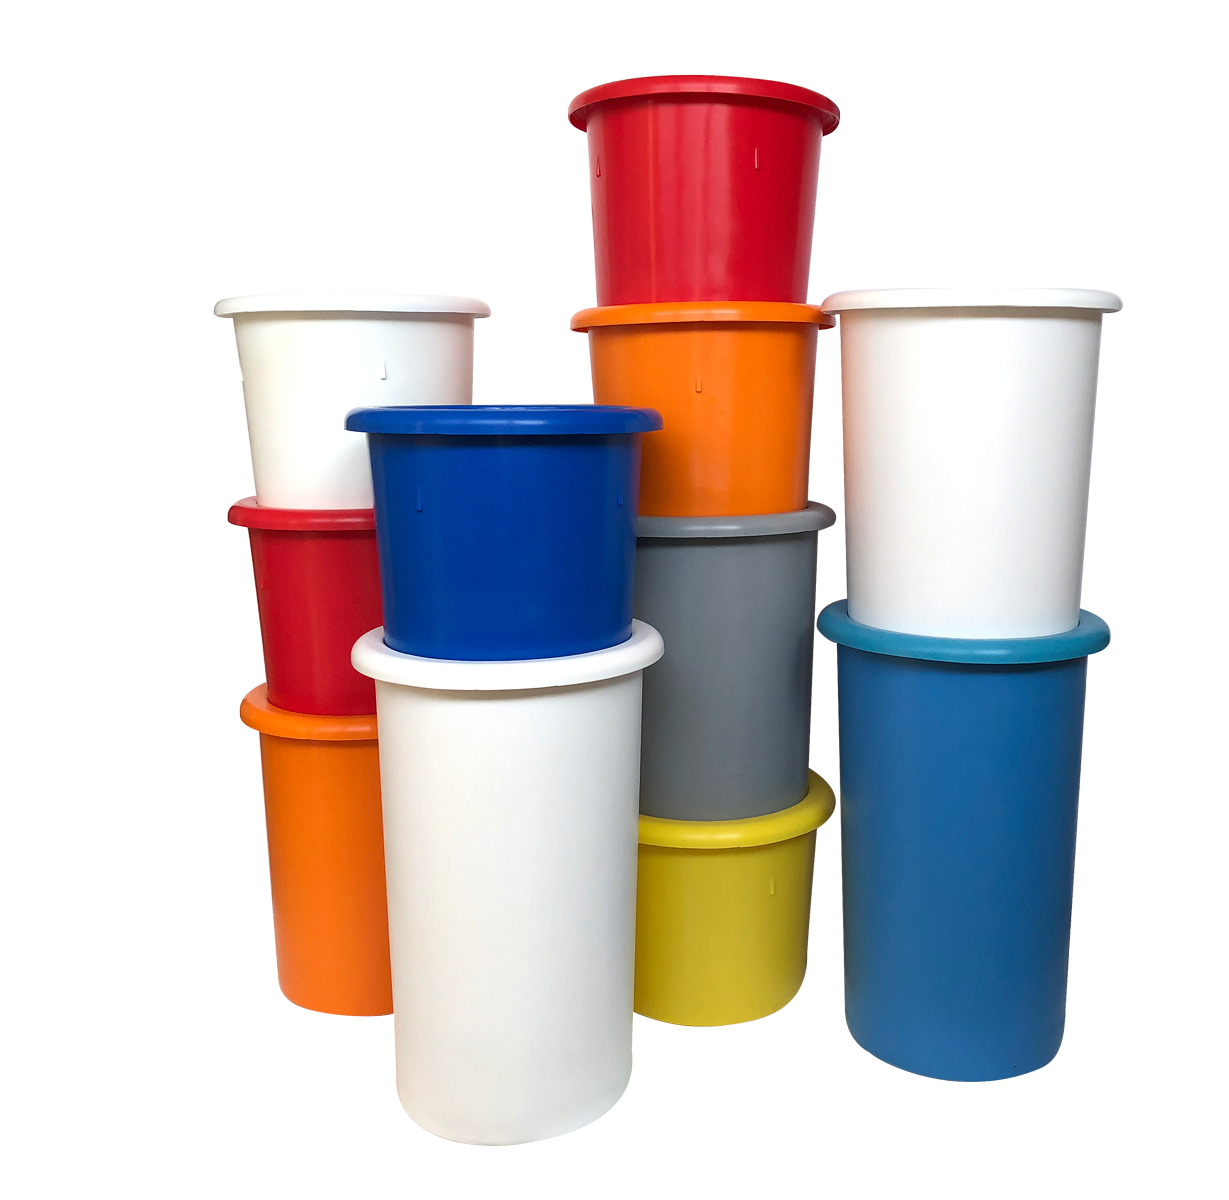 NEW! Colour coded interstacking bins